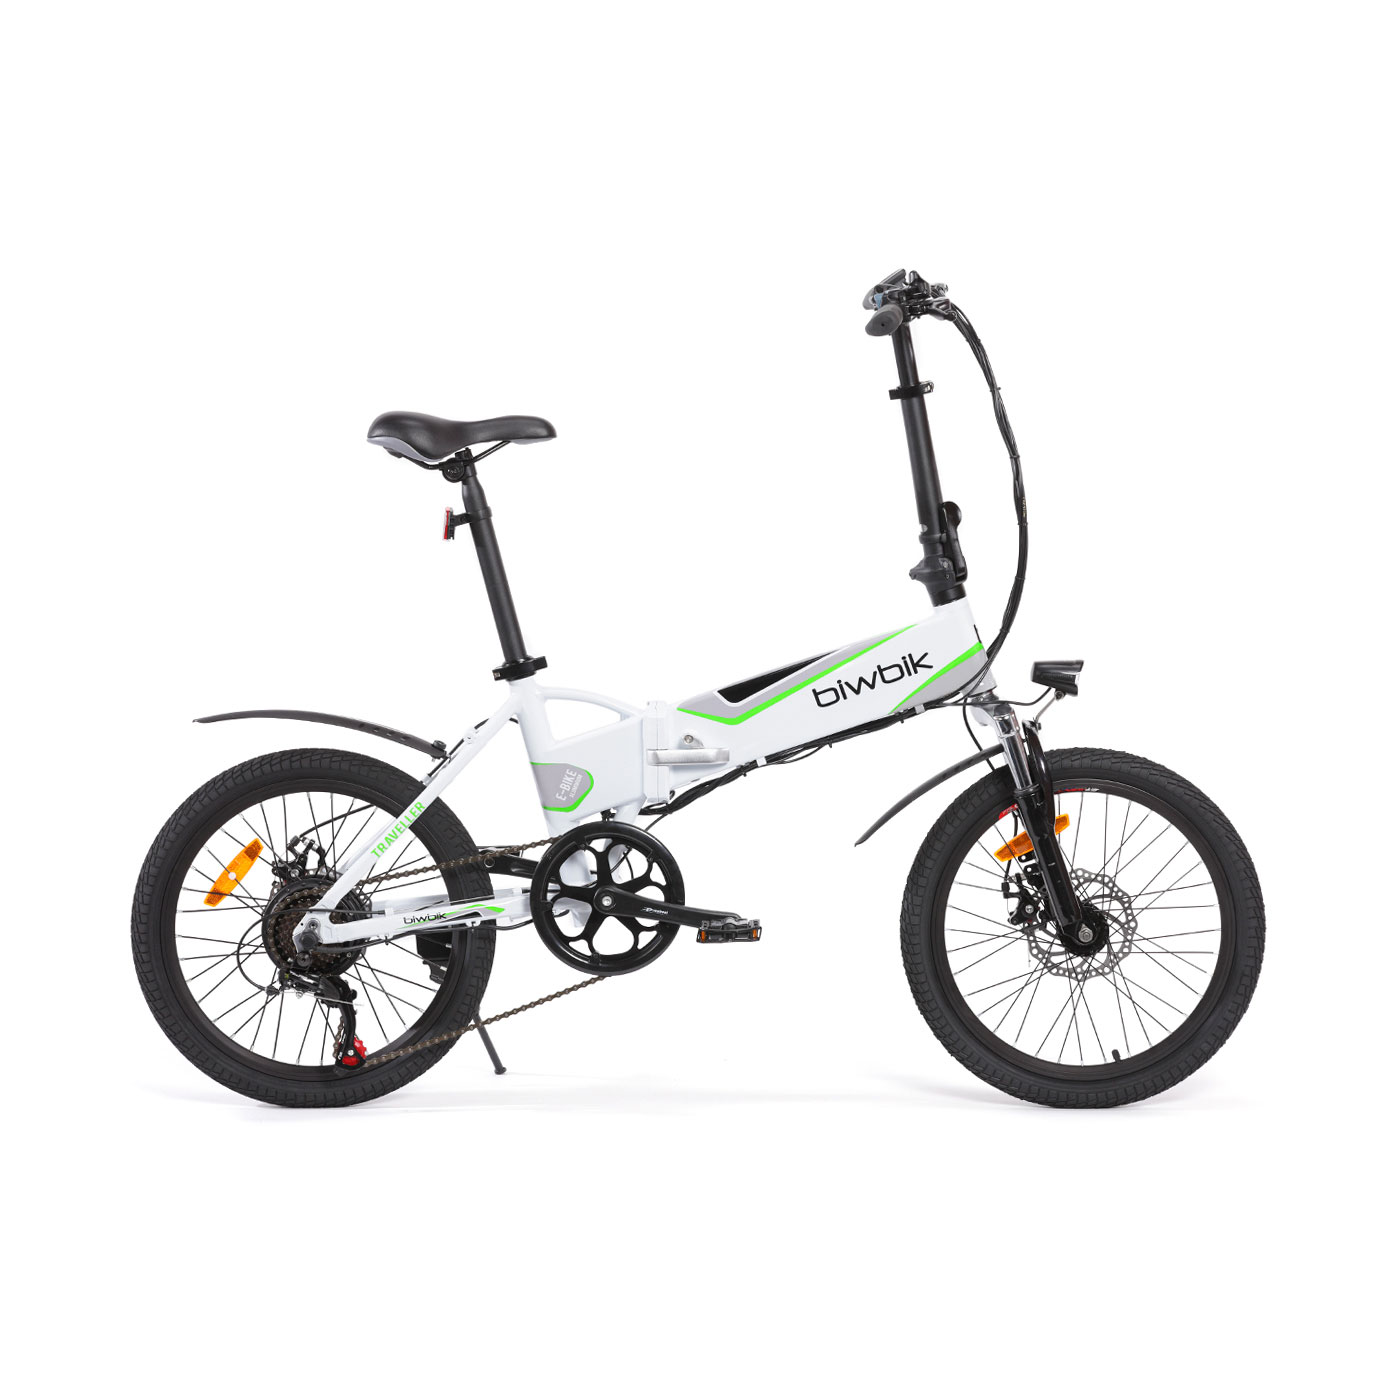 Bicyclette électrique pliable Traveller white 2.0